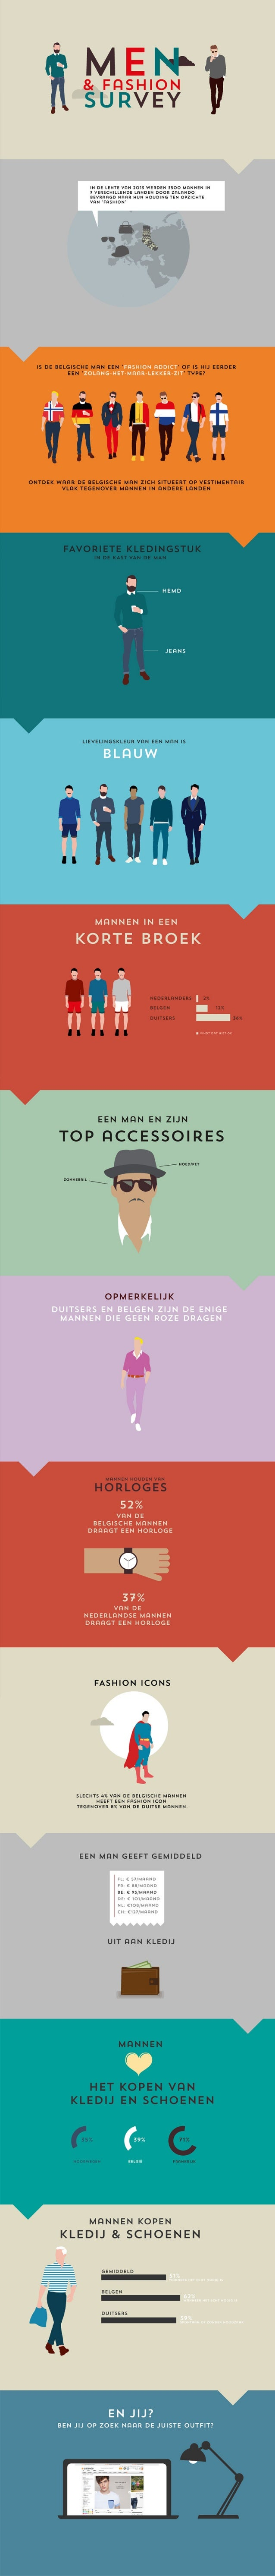 Infographic voor Zalando over mannen en mode (fashion survey)